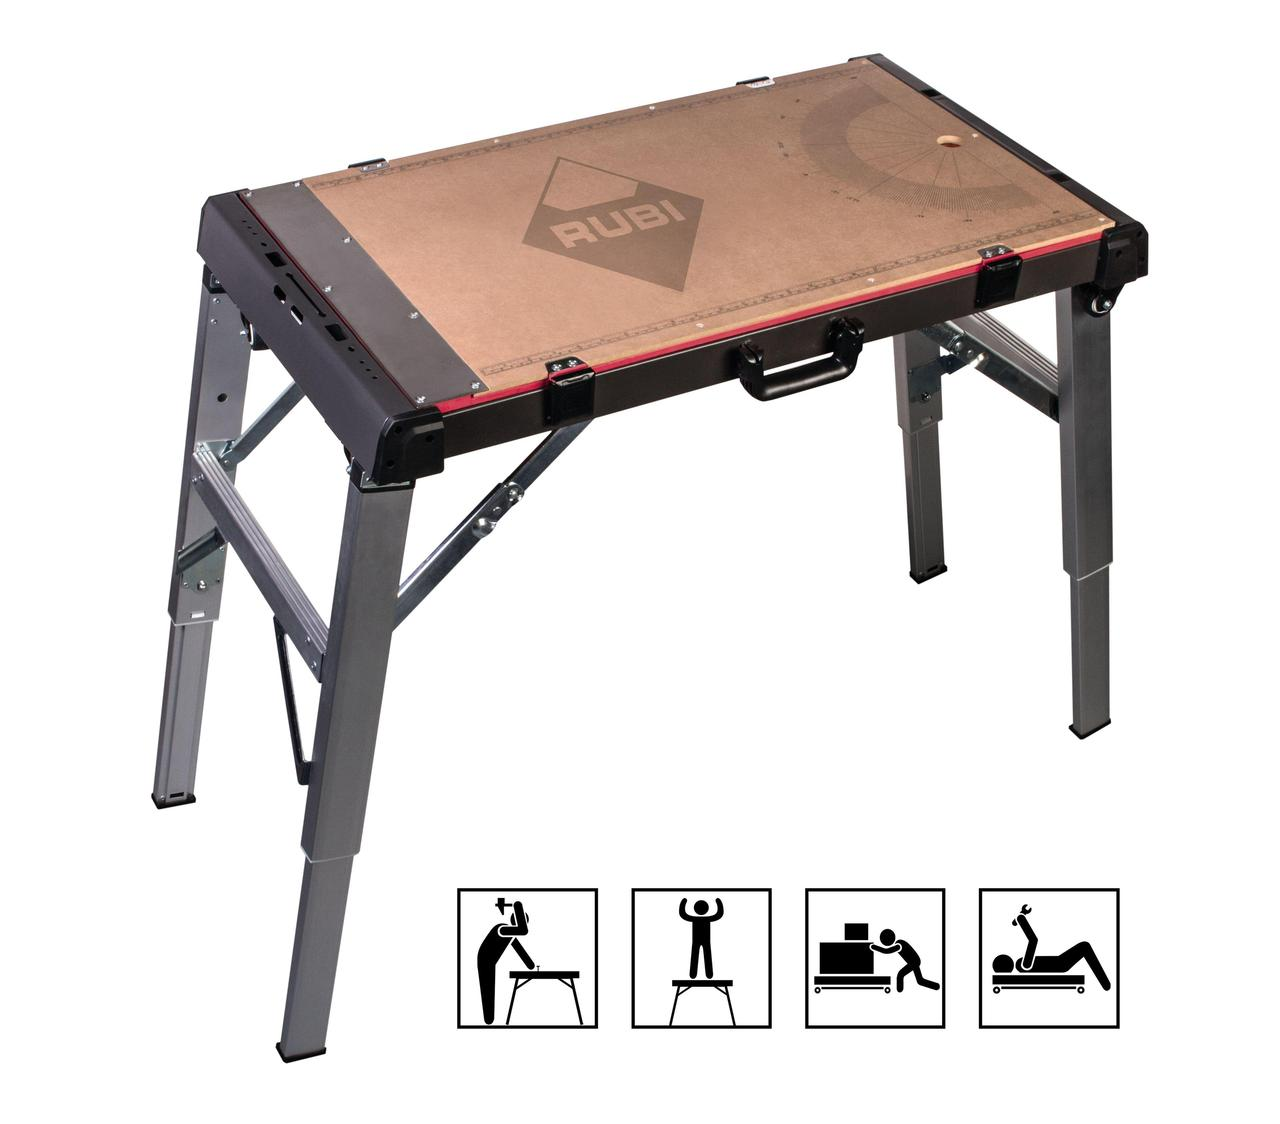 Folding work table 4 in 1